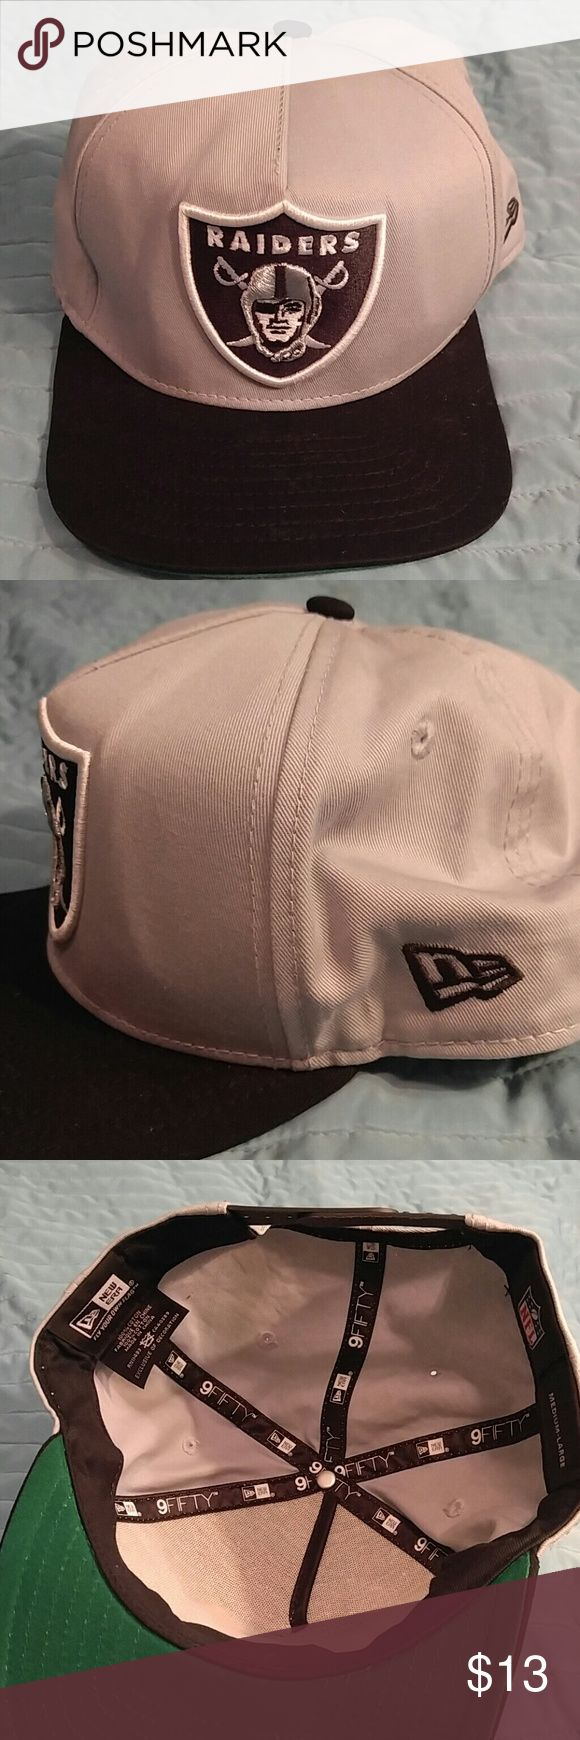 New Era Oakland Raiders snapback hat Gear up for football season with this officially liscensed New Era Raiders snapback. This hat is in fantastic condition, just like new! New Era Accessories Hats